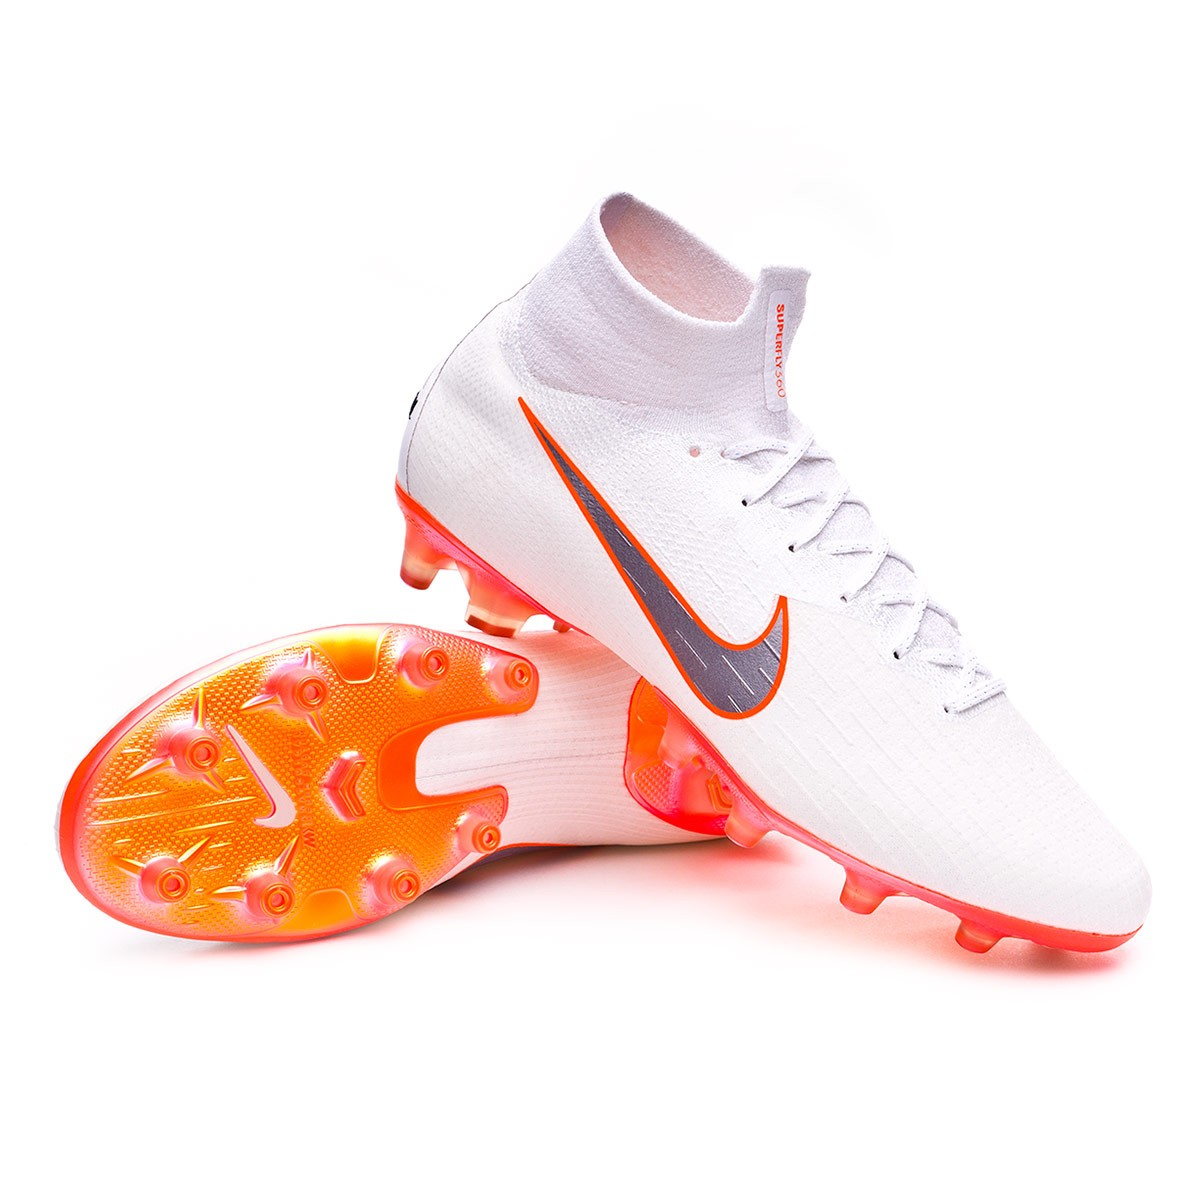 2a786ba1c3d37 Football Boots Nike Mercurial Superfly VI Elite AG-Pro White ...